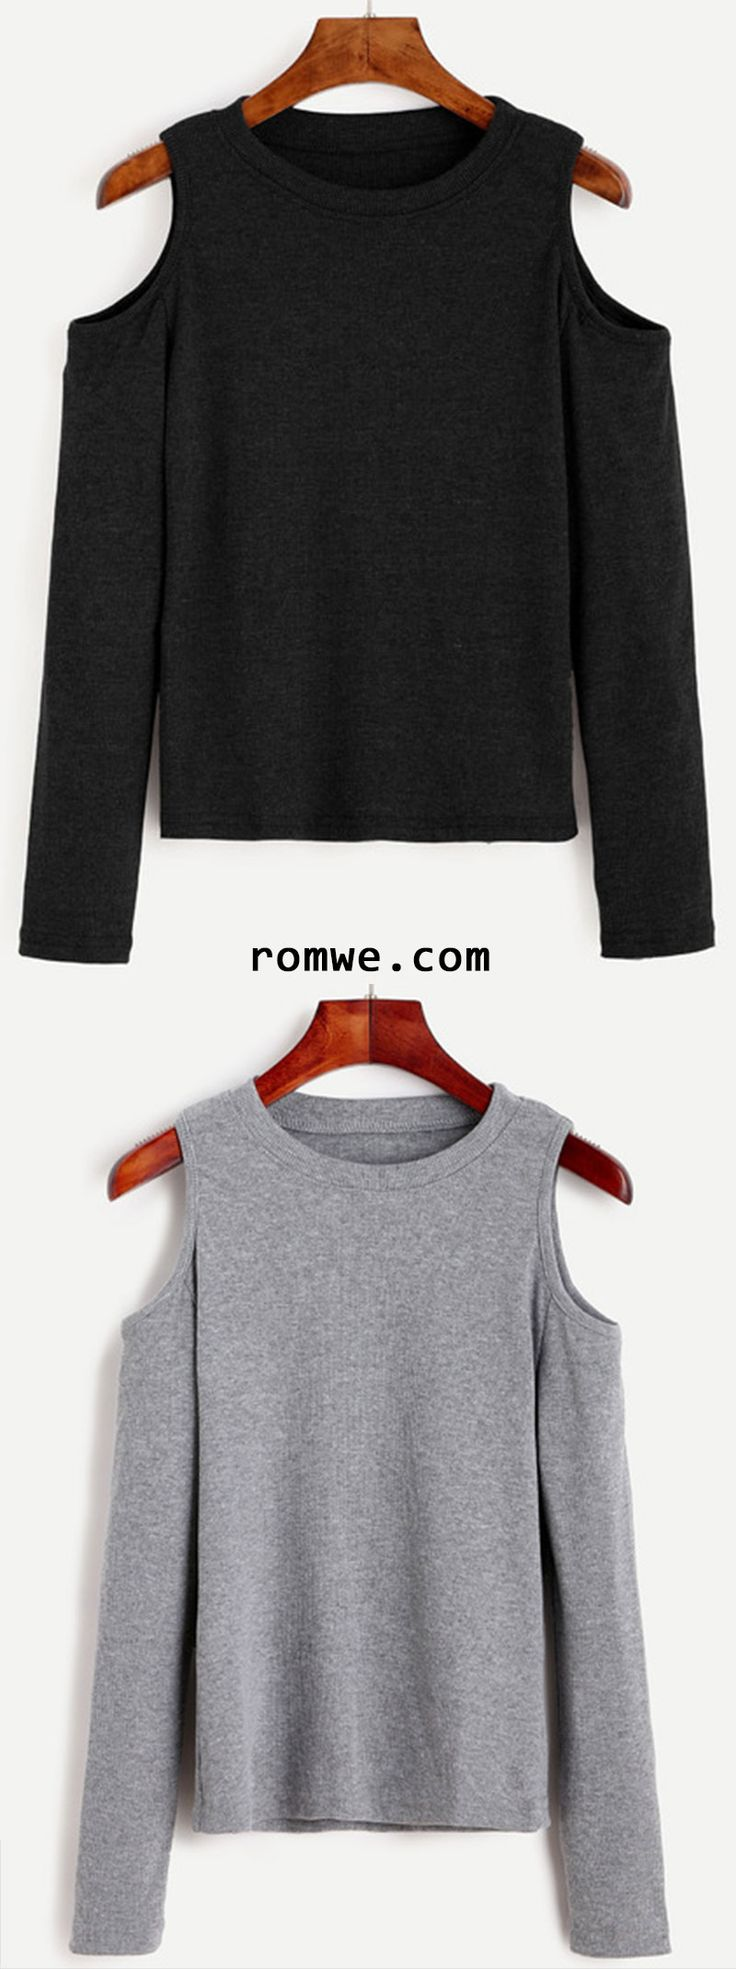 Grey & Black Open Shoulder Knit T-shirt from romwe.com